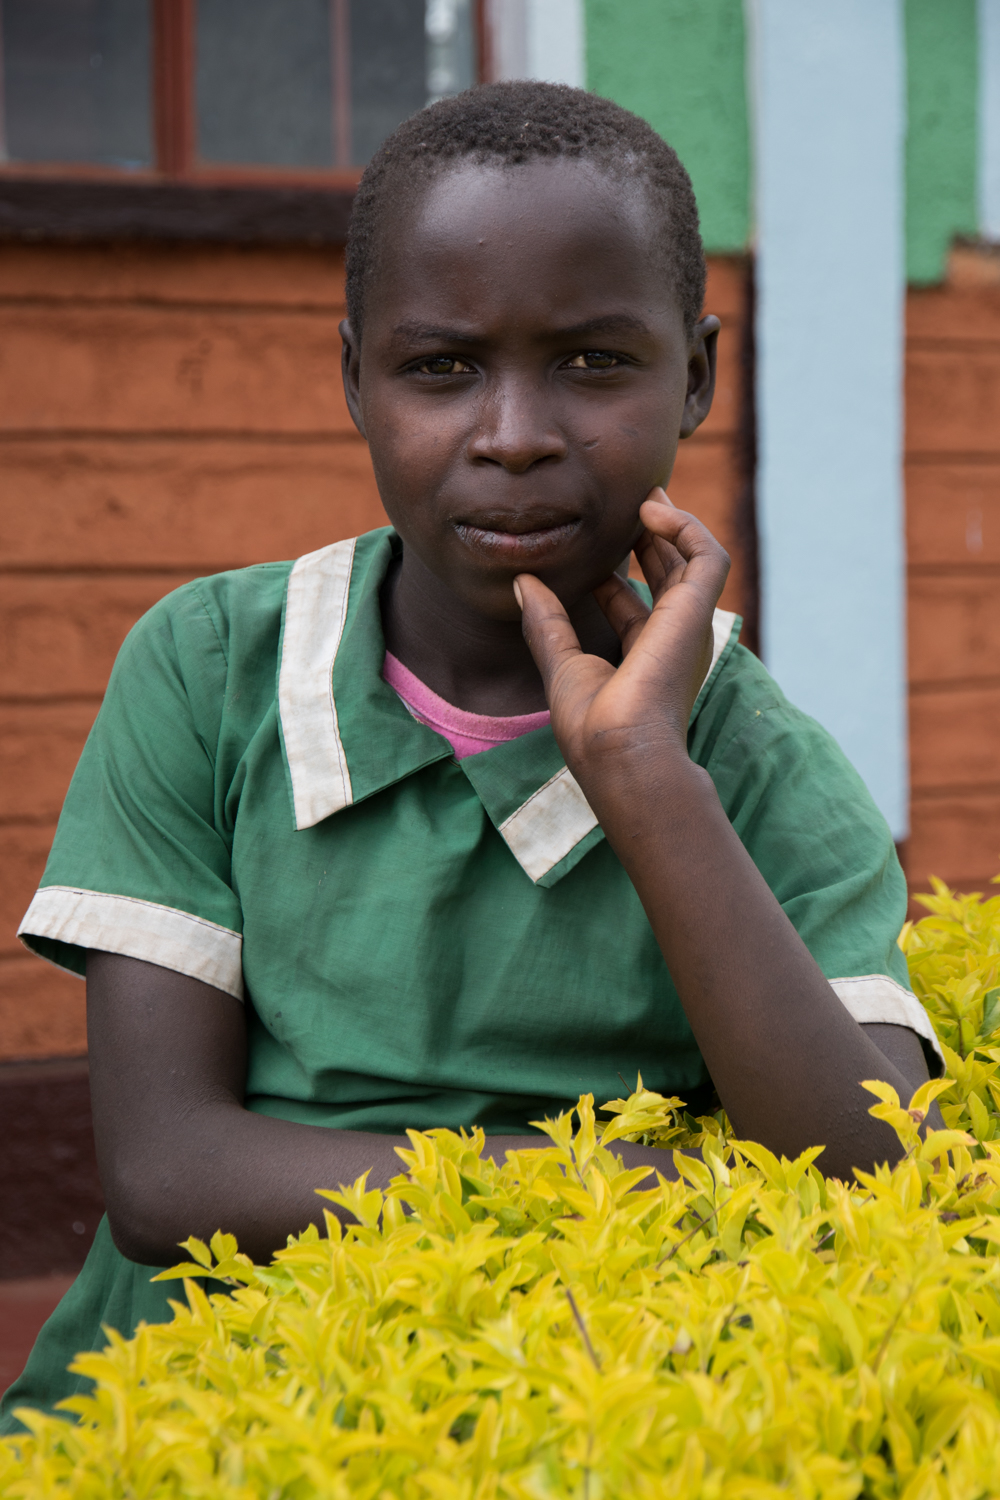 kenyan female student portrait with flowers